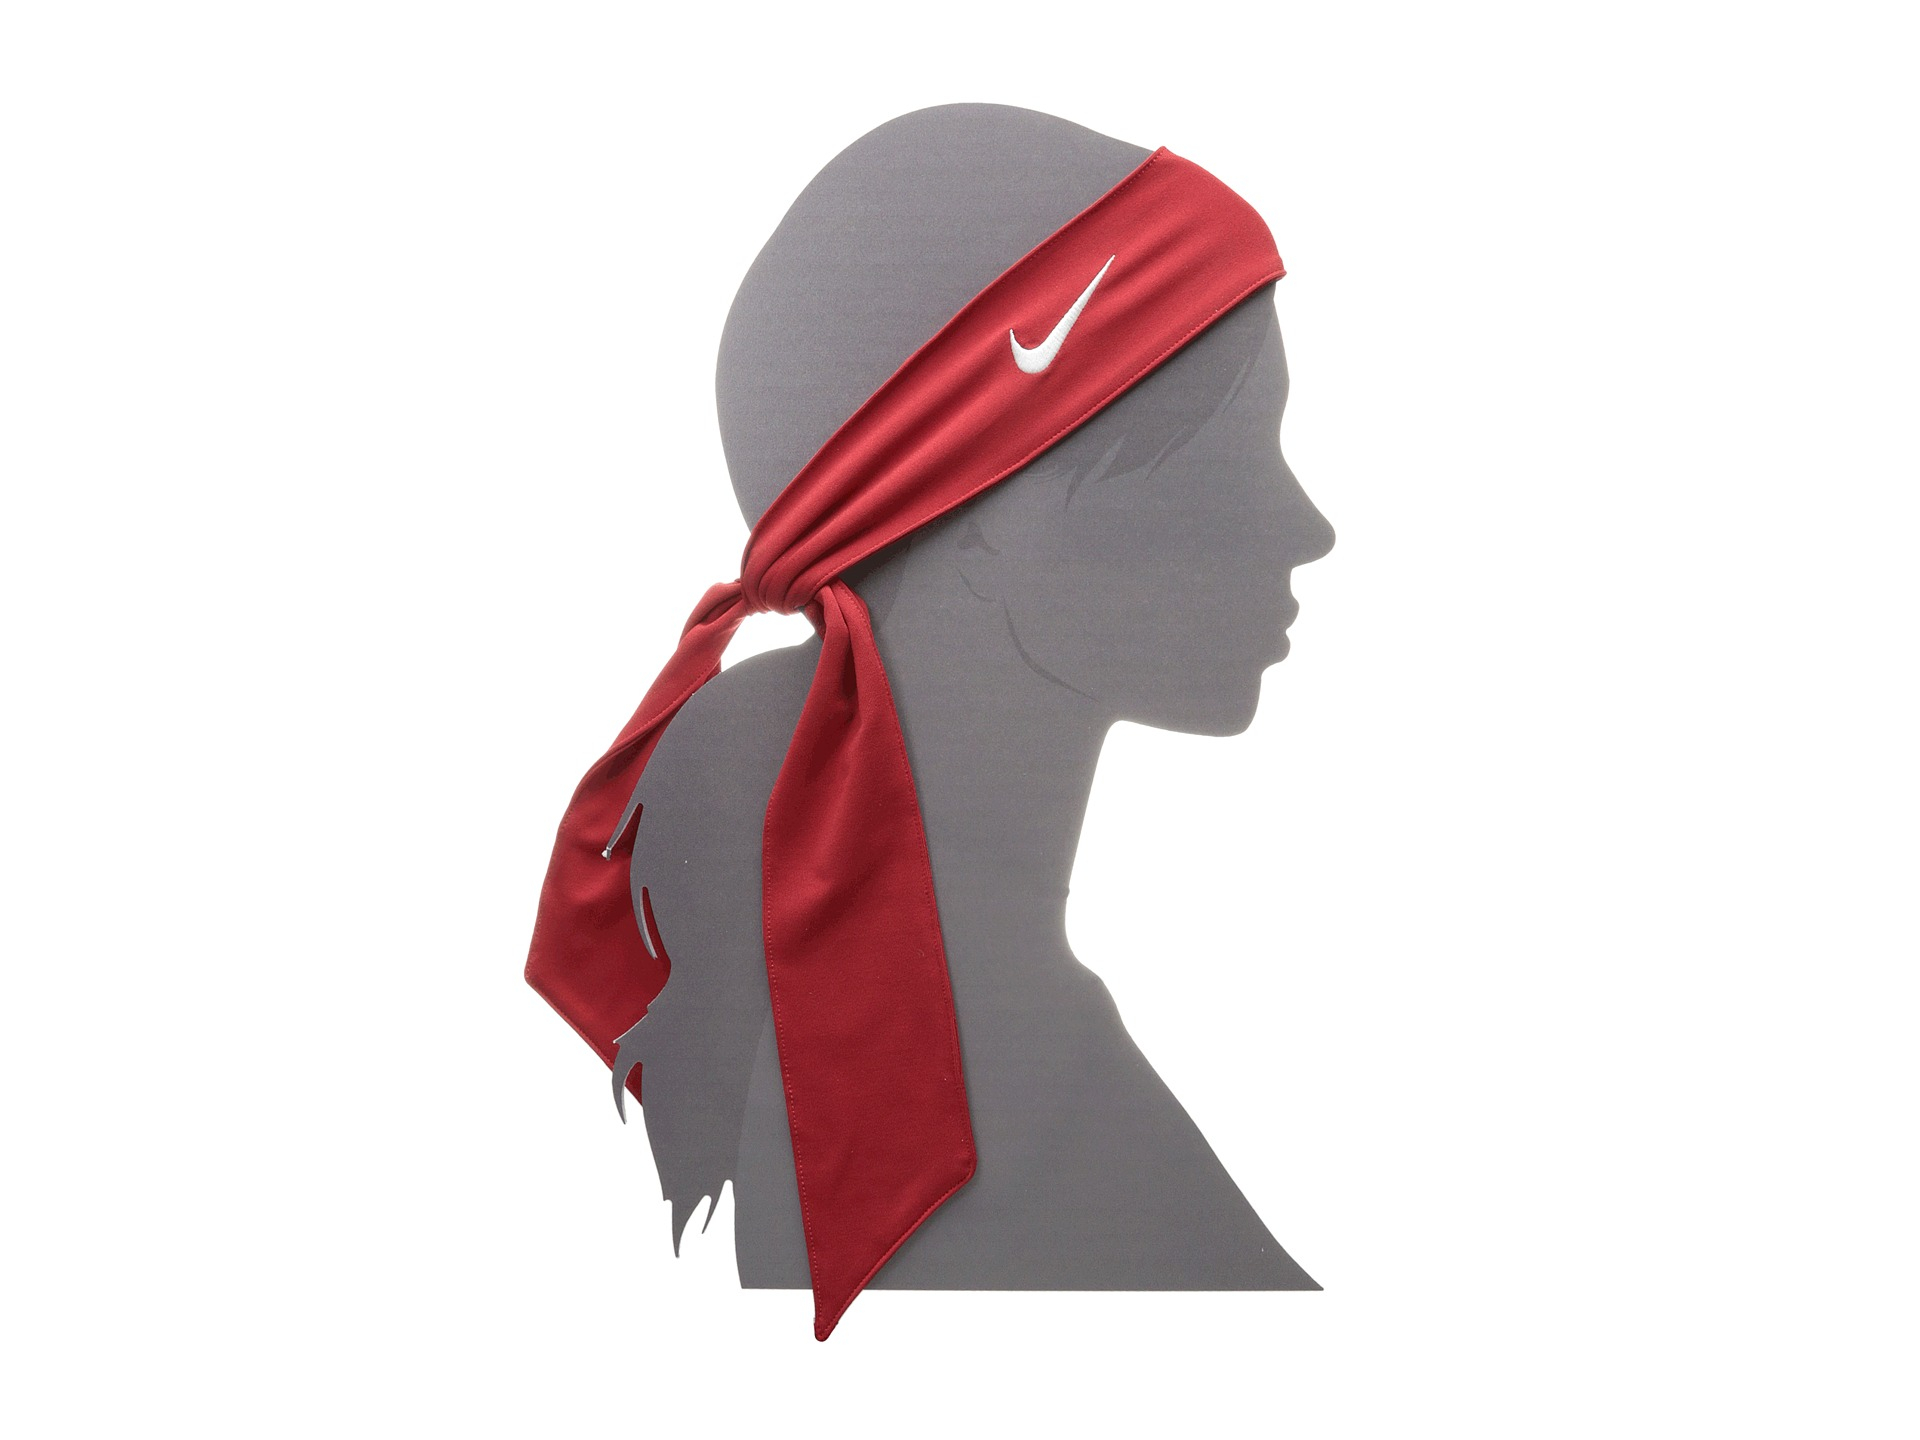 Lyst - Nike Dri-Fit Head Tie 2.0 in Red f0cfd34107f